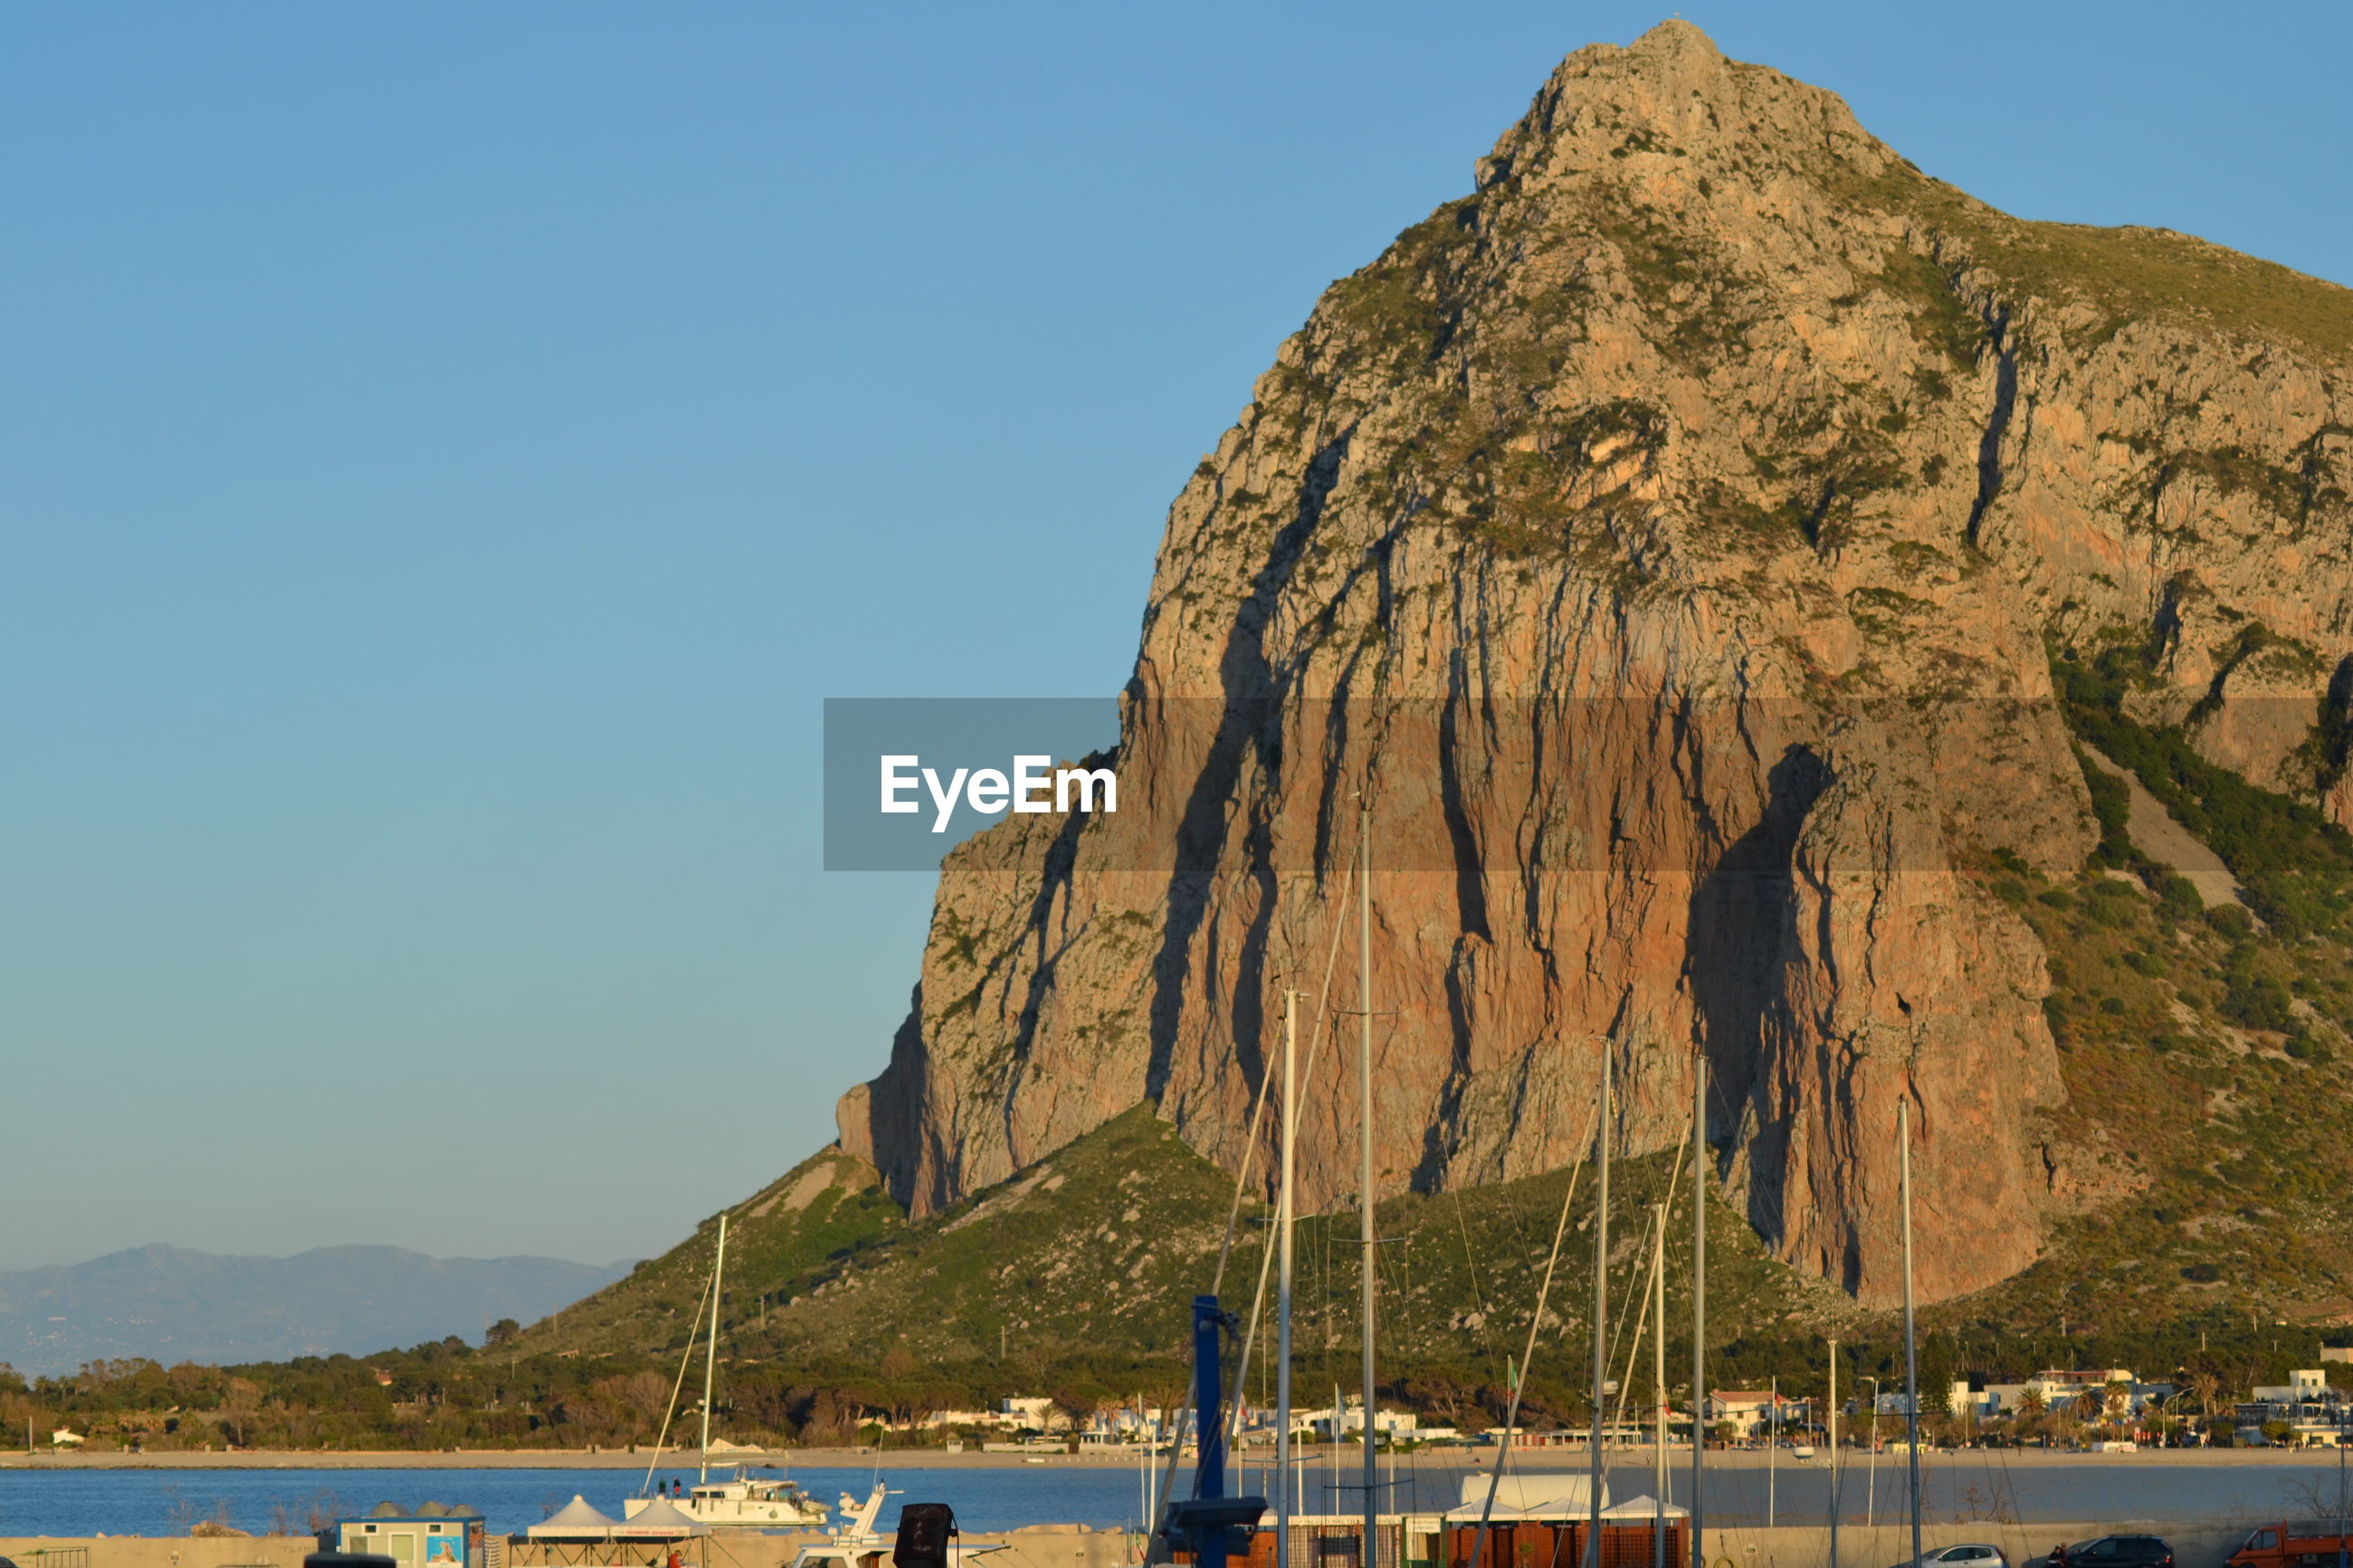 SCENIC VIEW OF SEA AND MOUNTAIN AGAINST CLEAR SKY